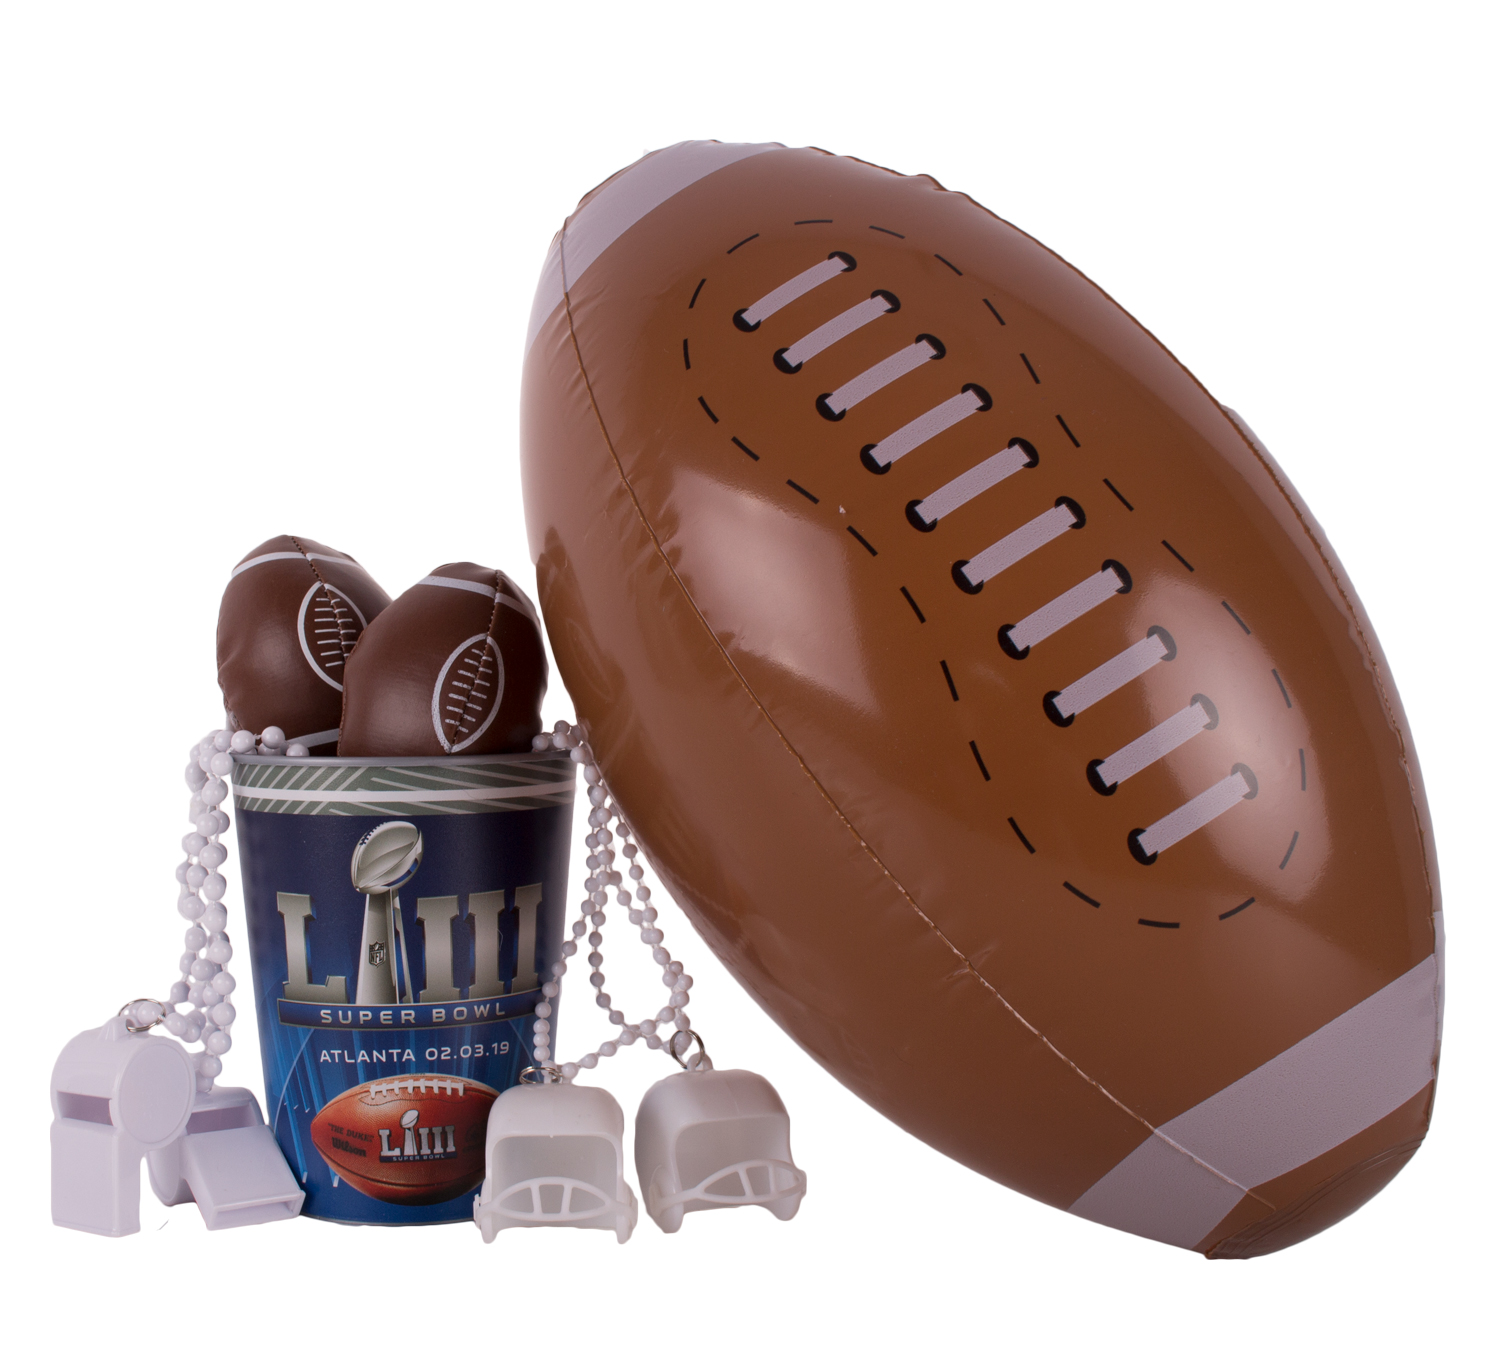 Super Bowl 53 Football Fan Tailgate Favor Cup 8pc 1 Person Party Pack